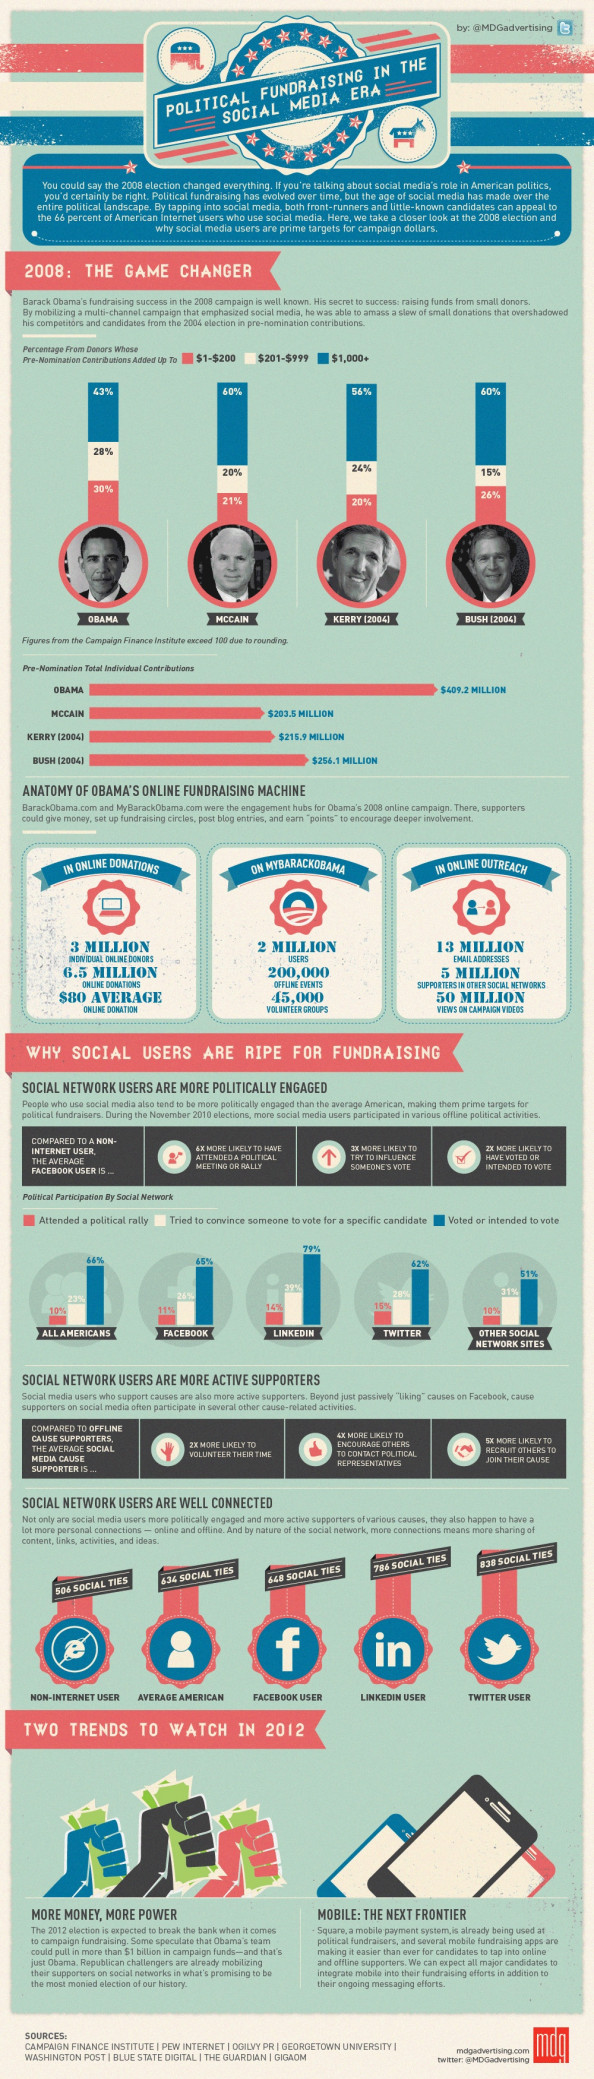 Political Fundraising in the Social Media Era Infographic